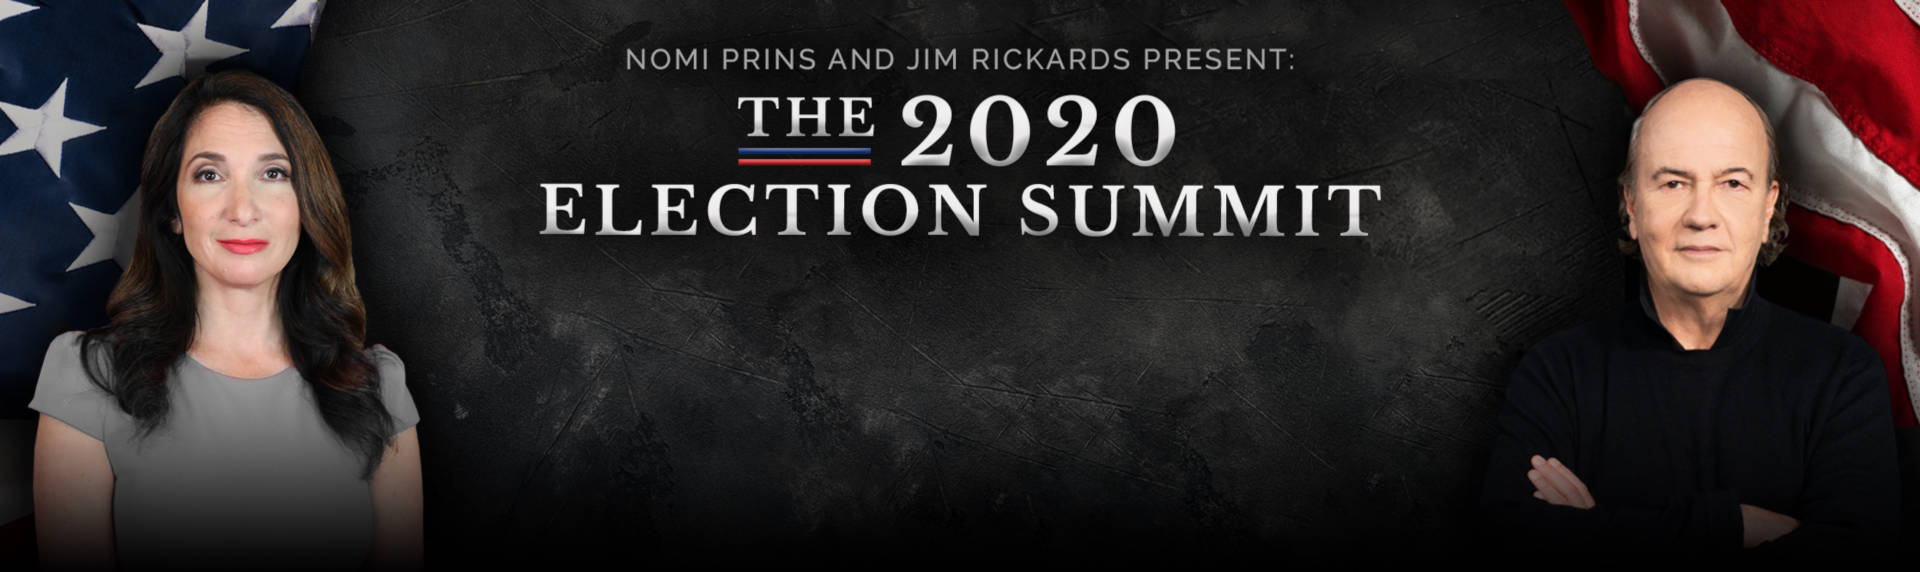 2020 Election Summit Review